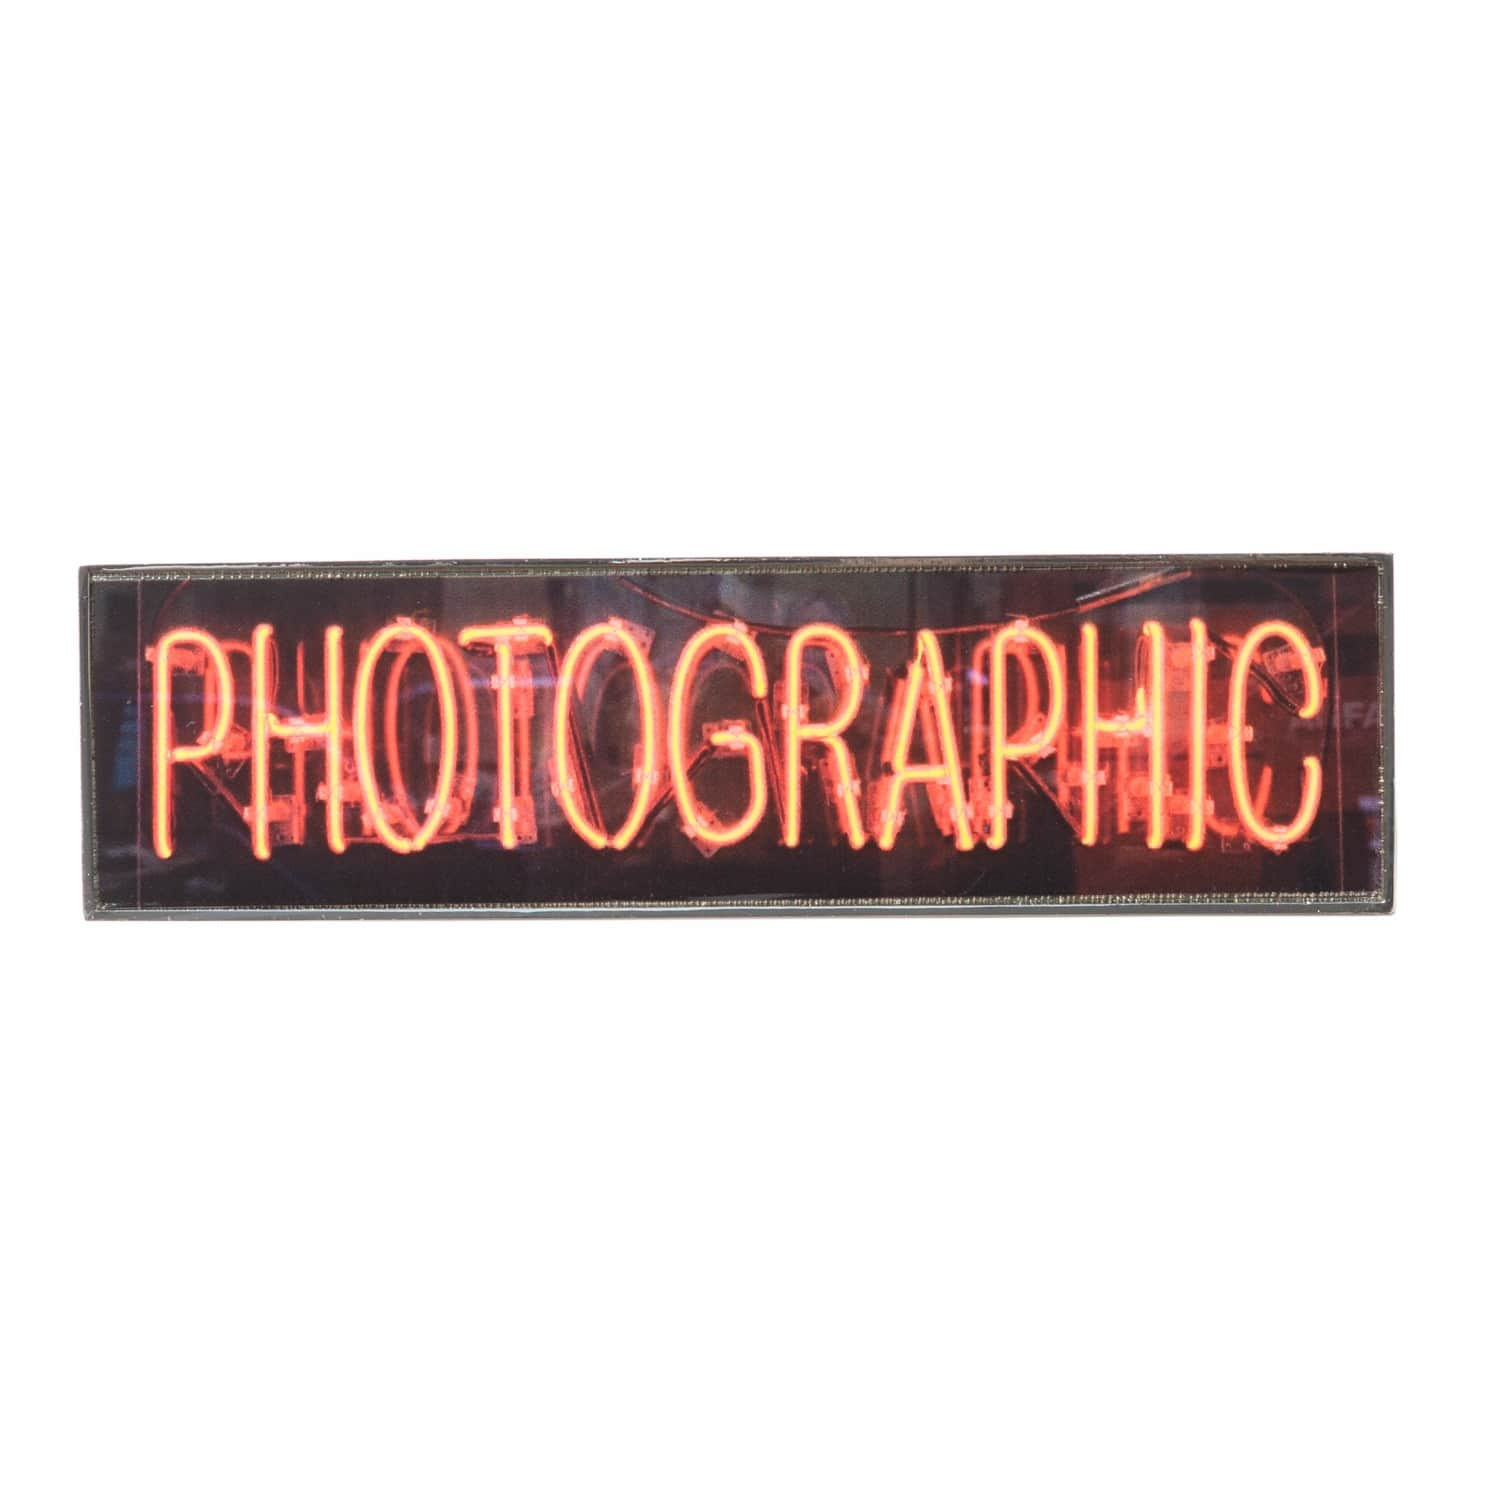 Photographic Badge by Plinth